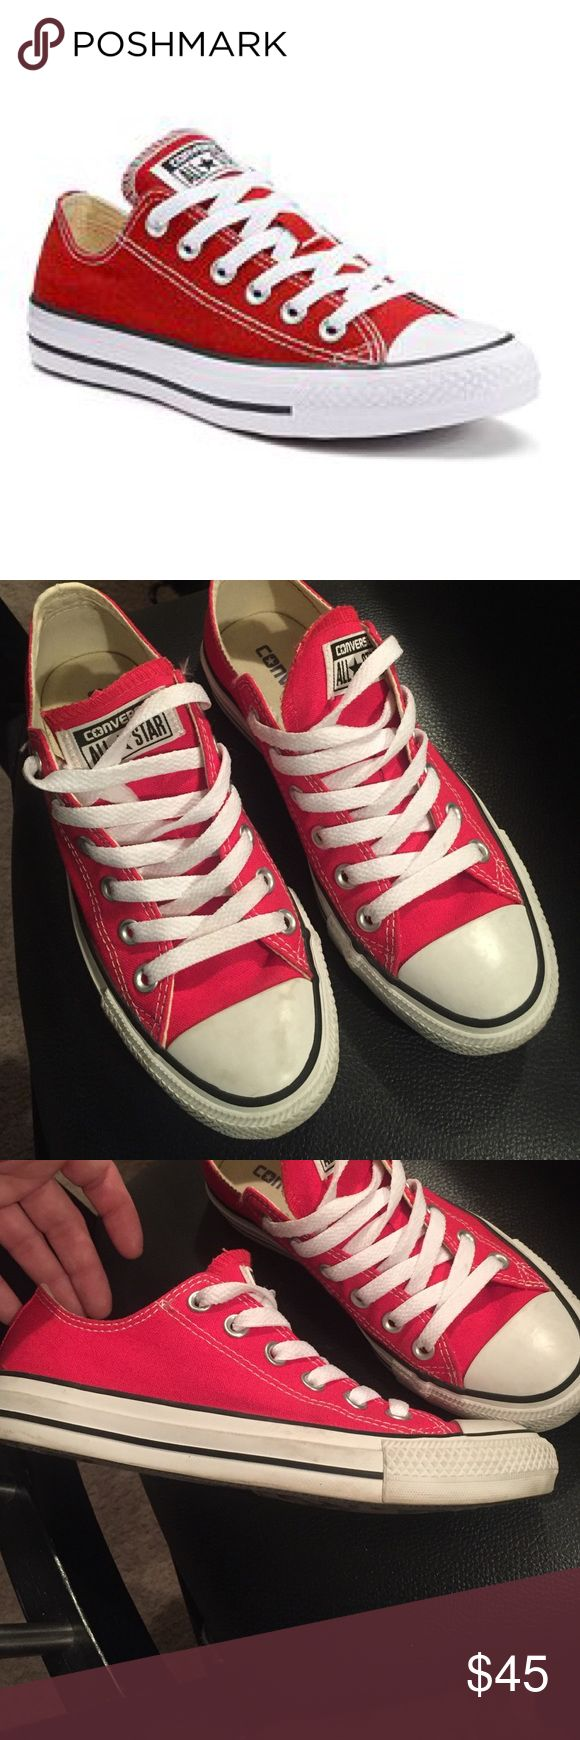 Red converse shoes Red converse shoes. Worn twice Converse Shoes